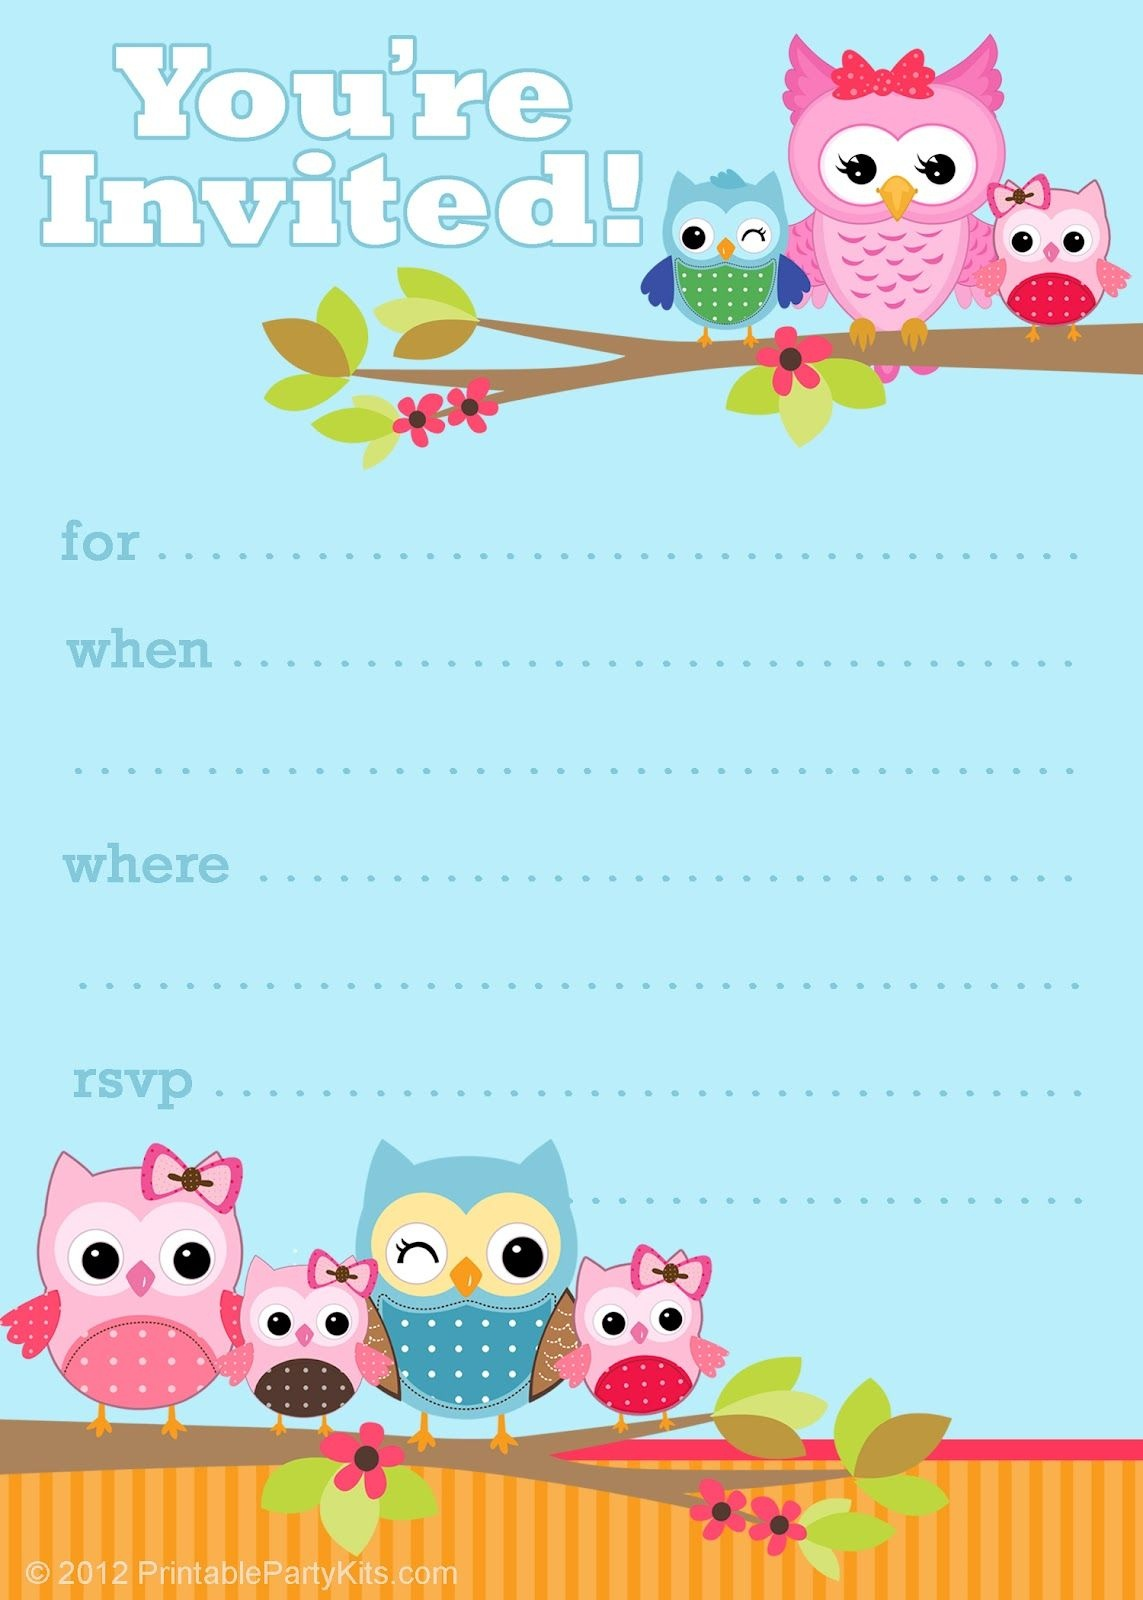 41 Printable Birthday Party Cards & Invitations For Kids To Make - Free Printable Birthday Invitations With Pictures